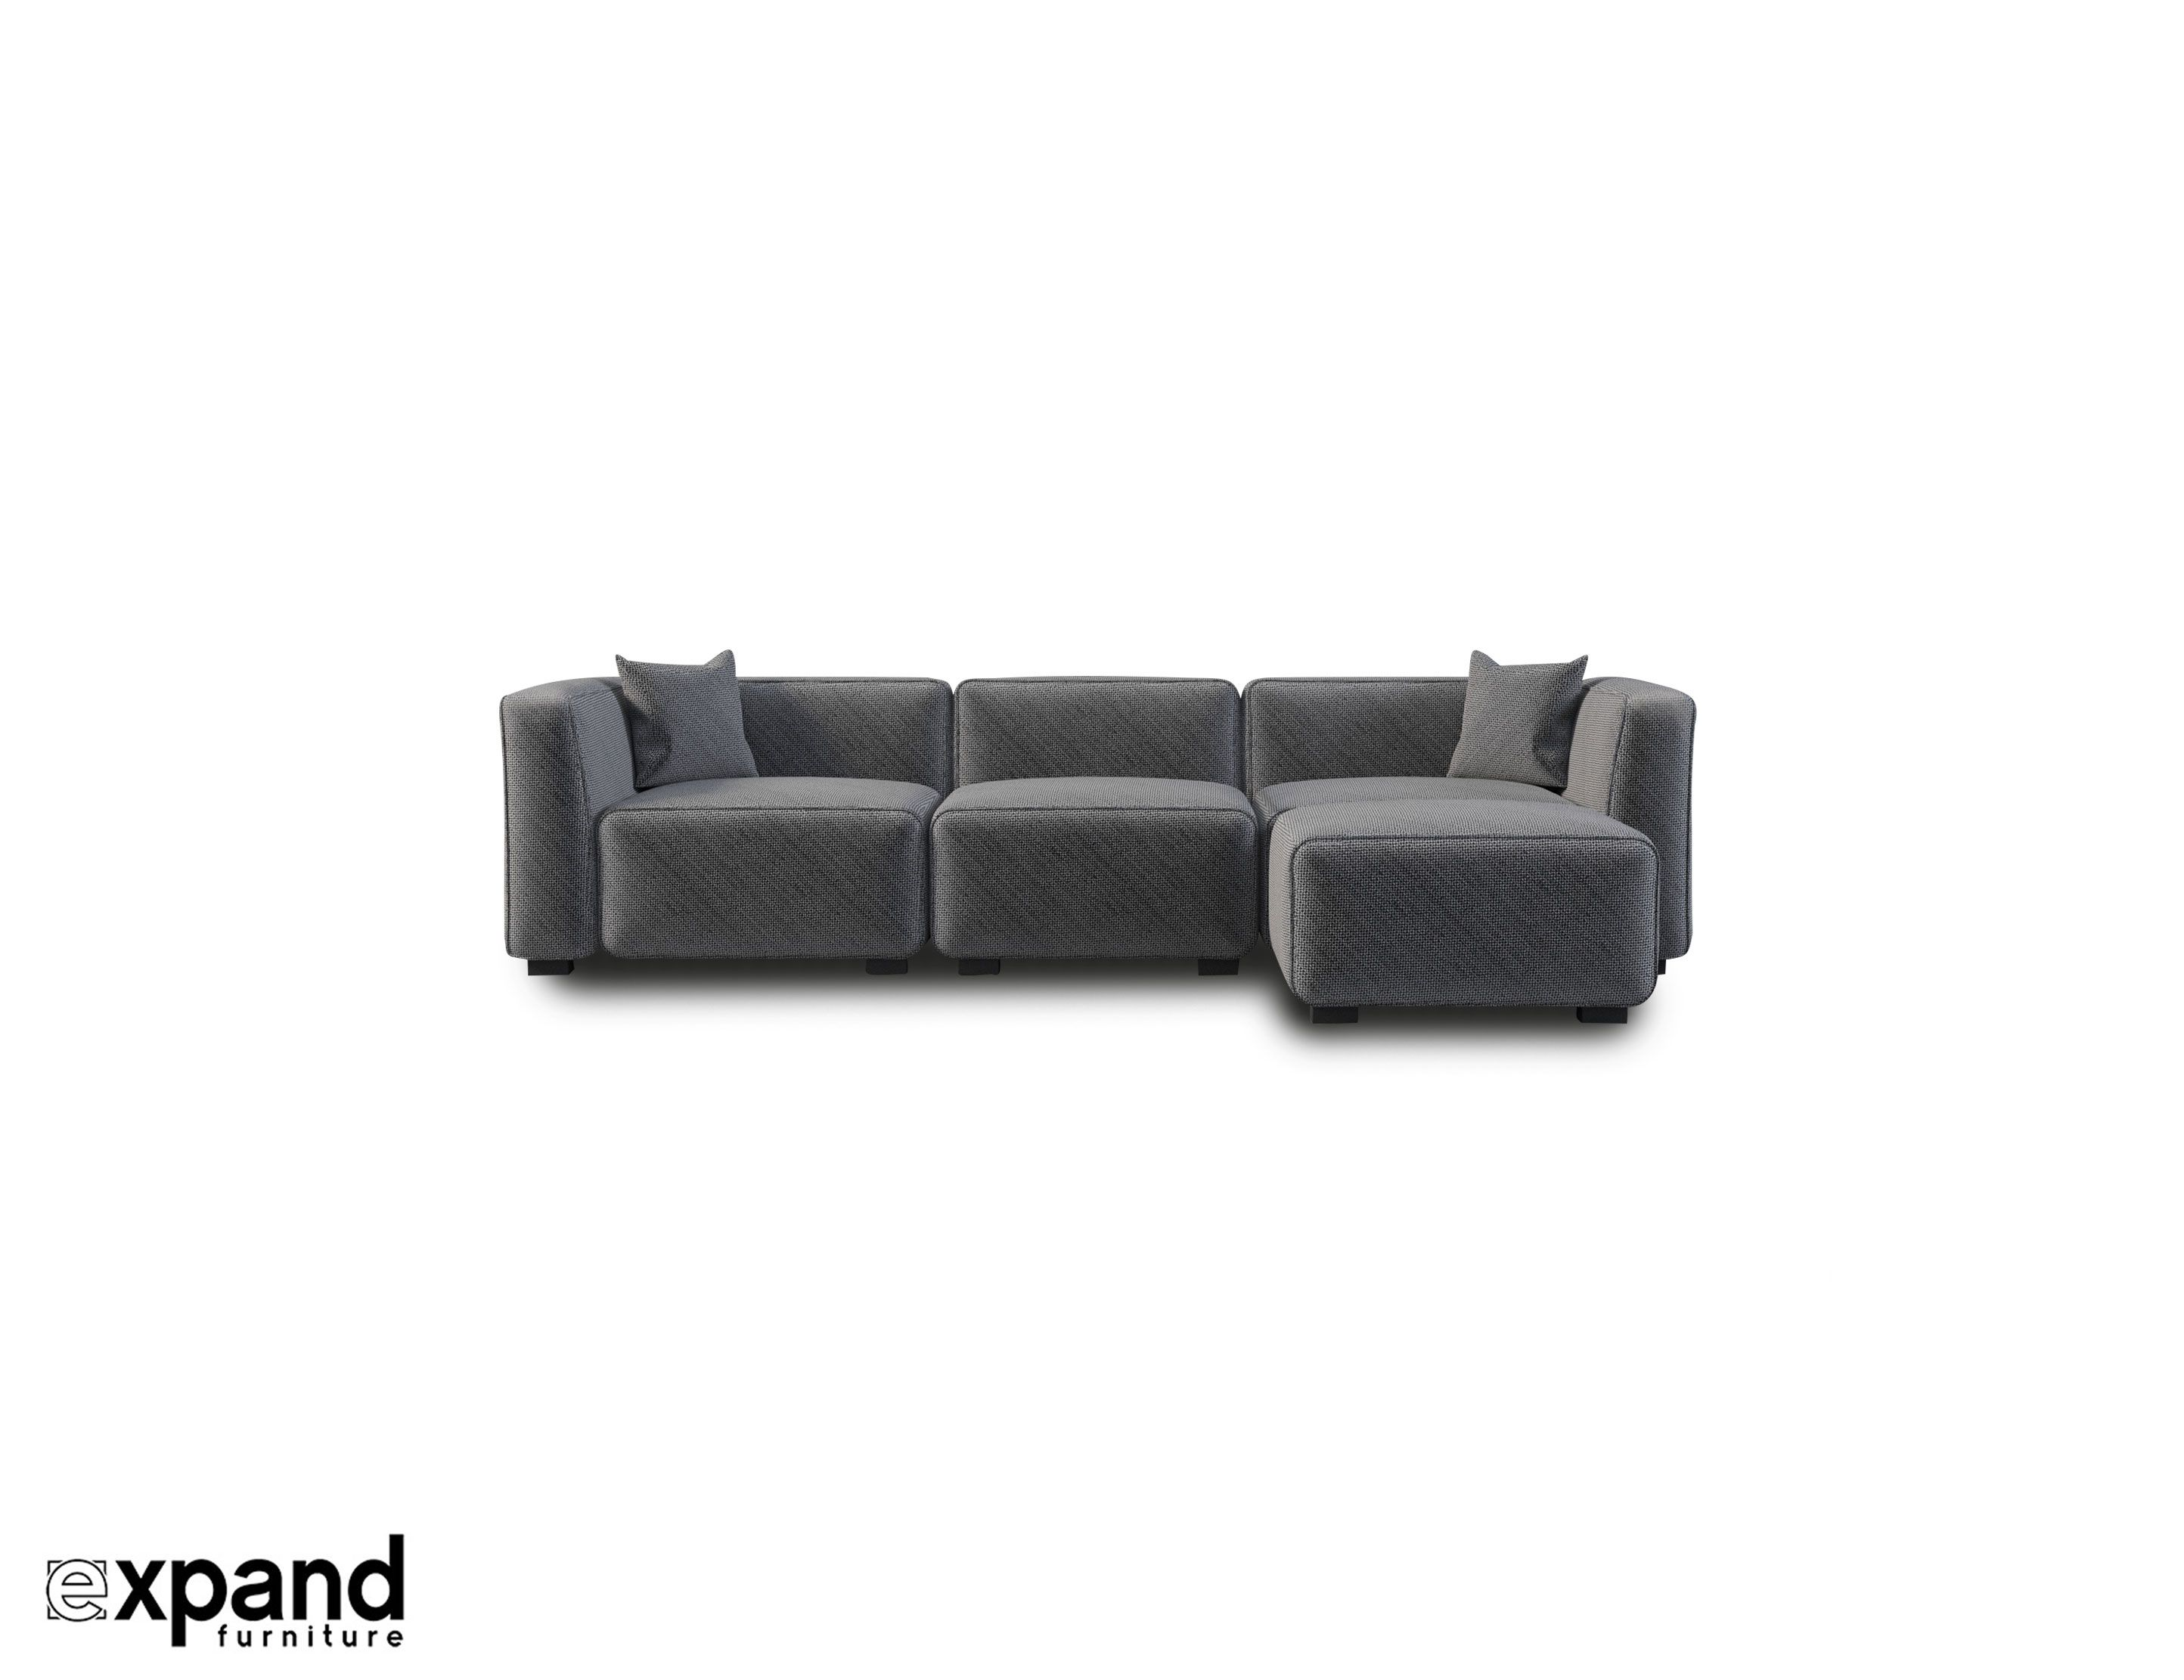 Super Soft Cube Modern Modular Sofa Set Modular Sofa Small Uwap Interior Chair Design Uwaporg